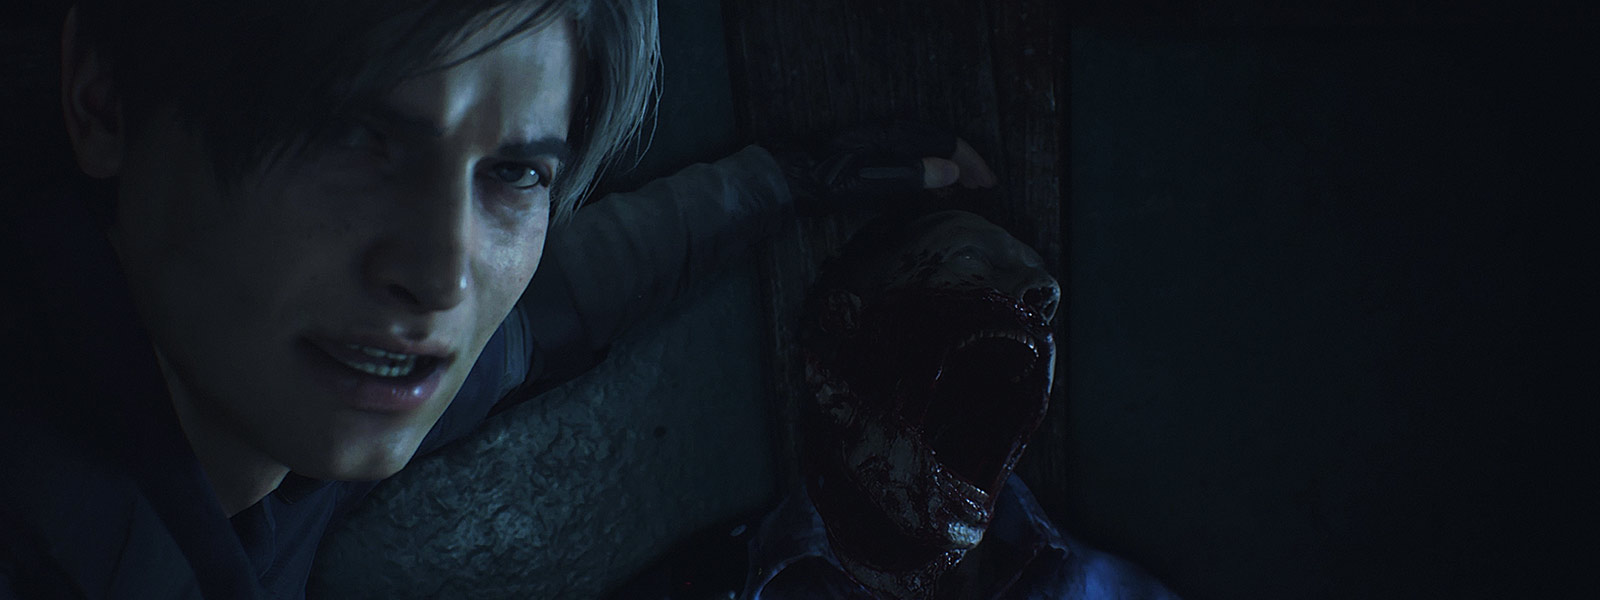 Leon Kennedy looks toward the camera as his hand rests above a dead zombie's head